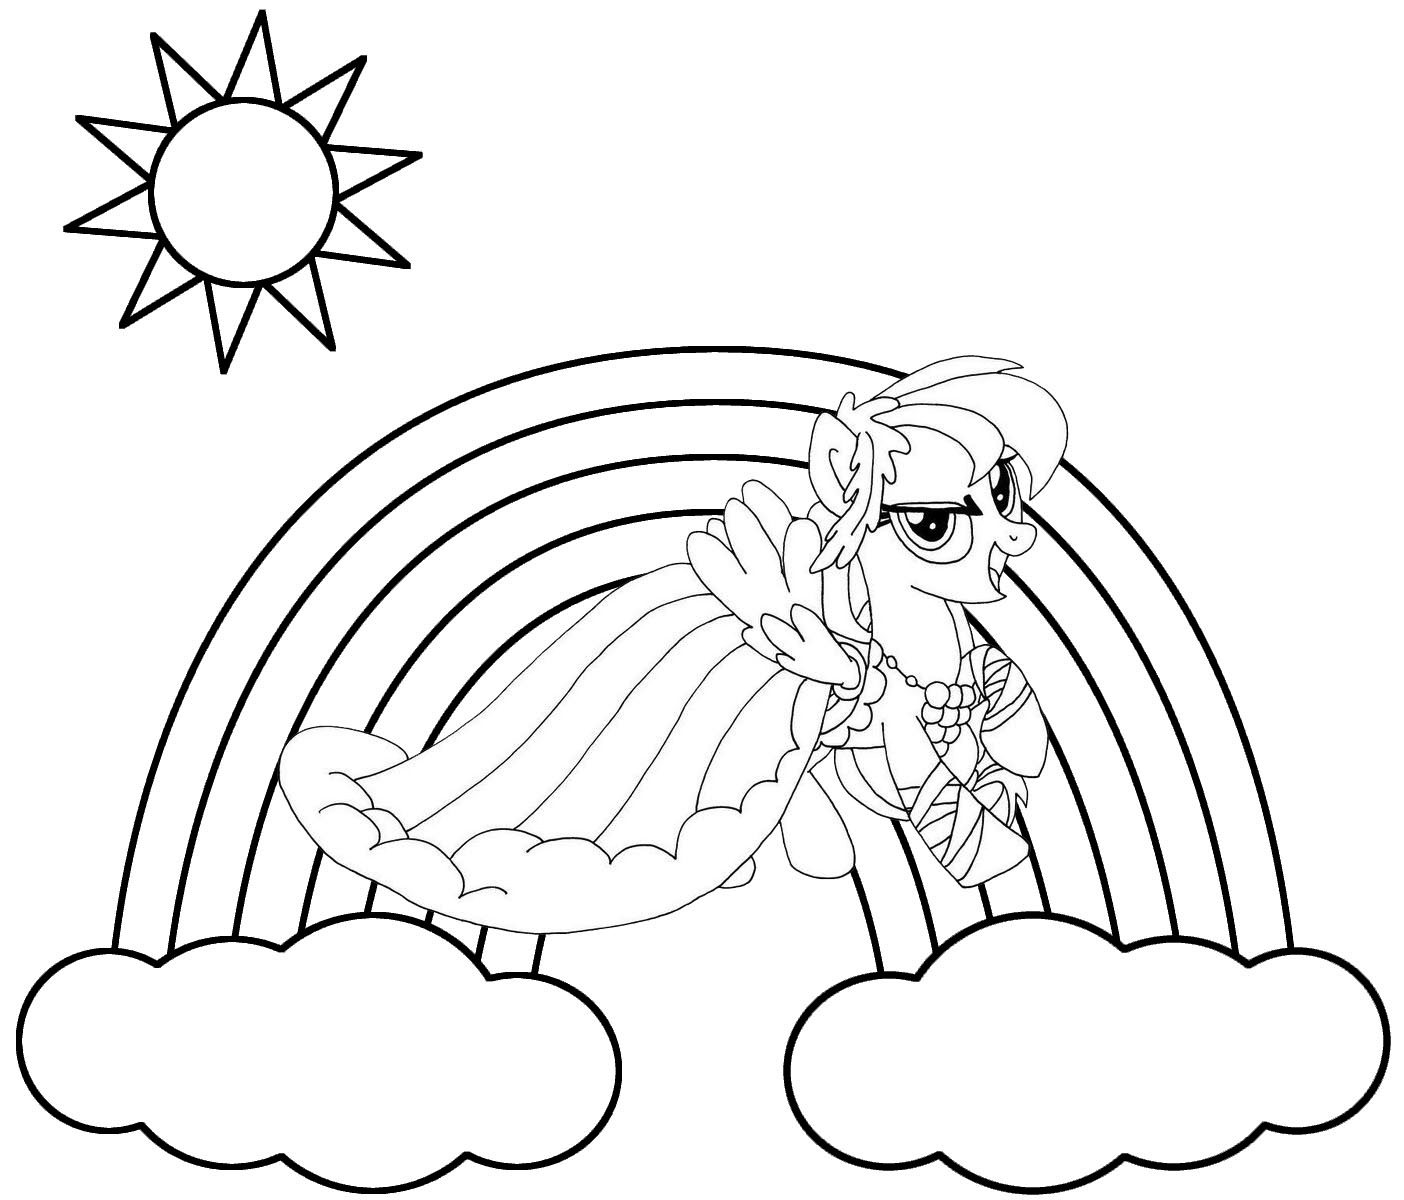 Rainbow Dash MLP Friendship Is Magic series Coloring Sheet